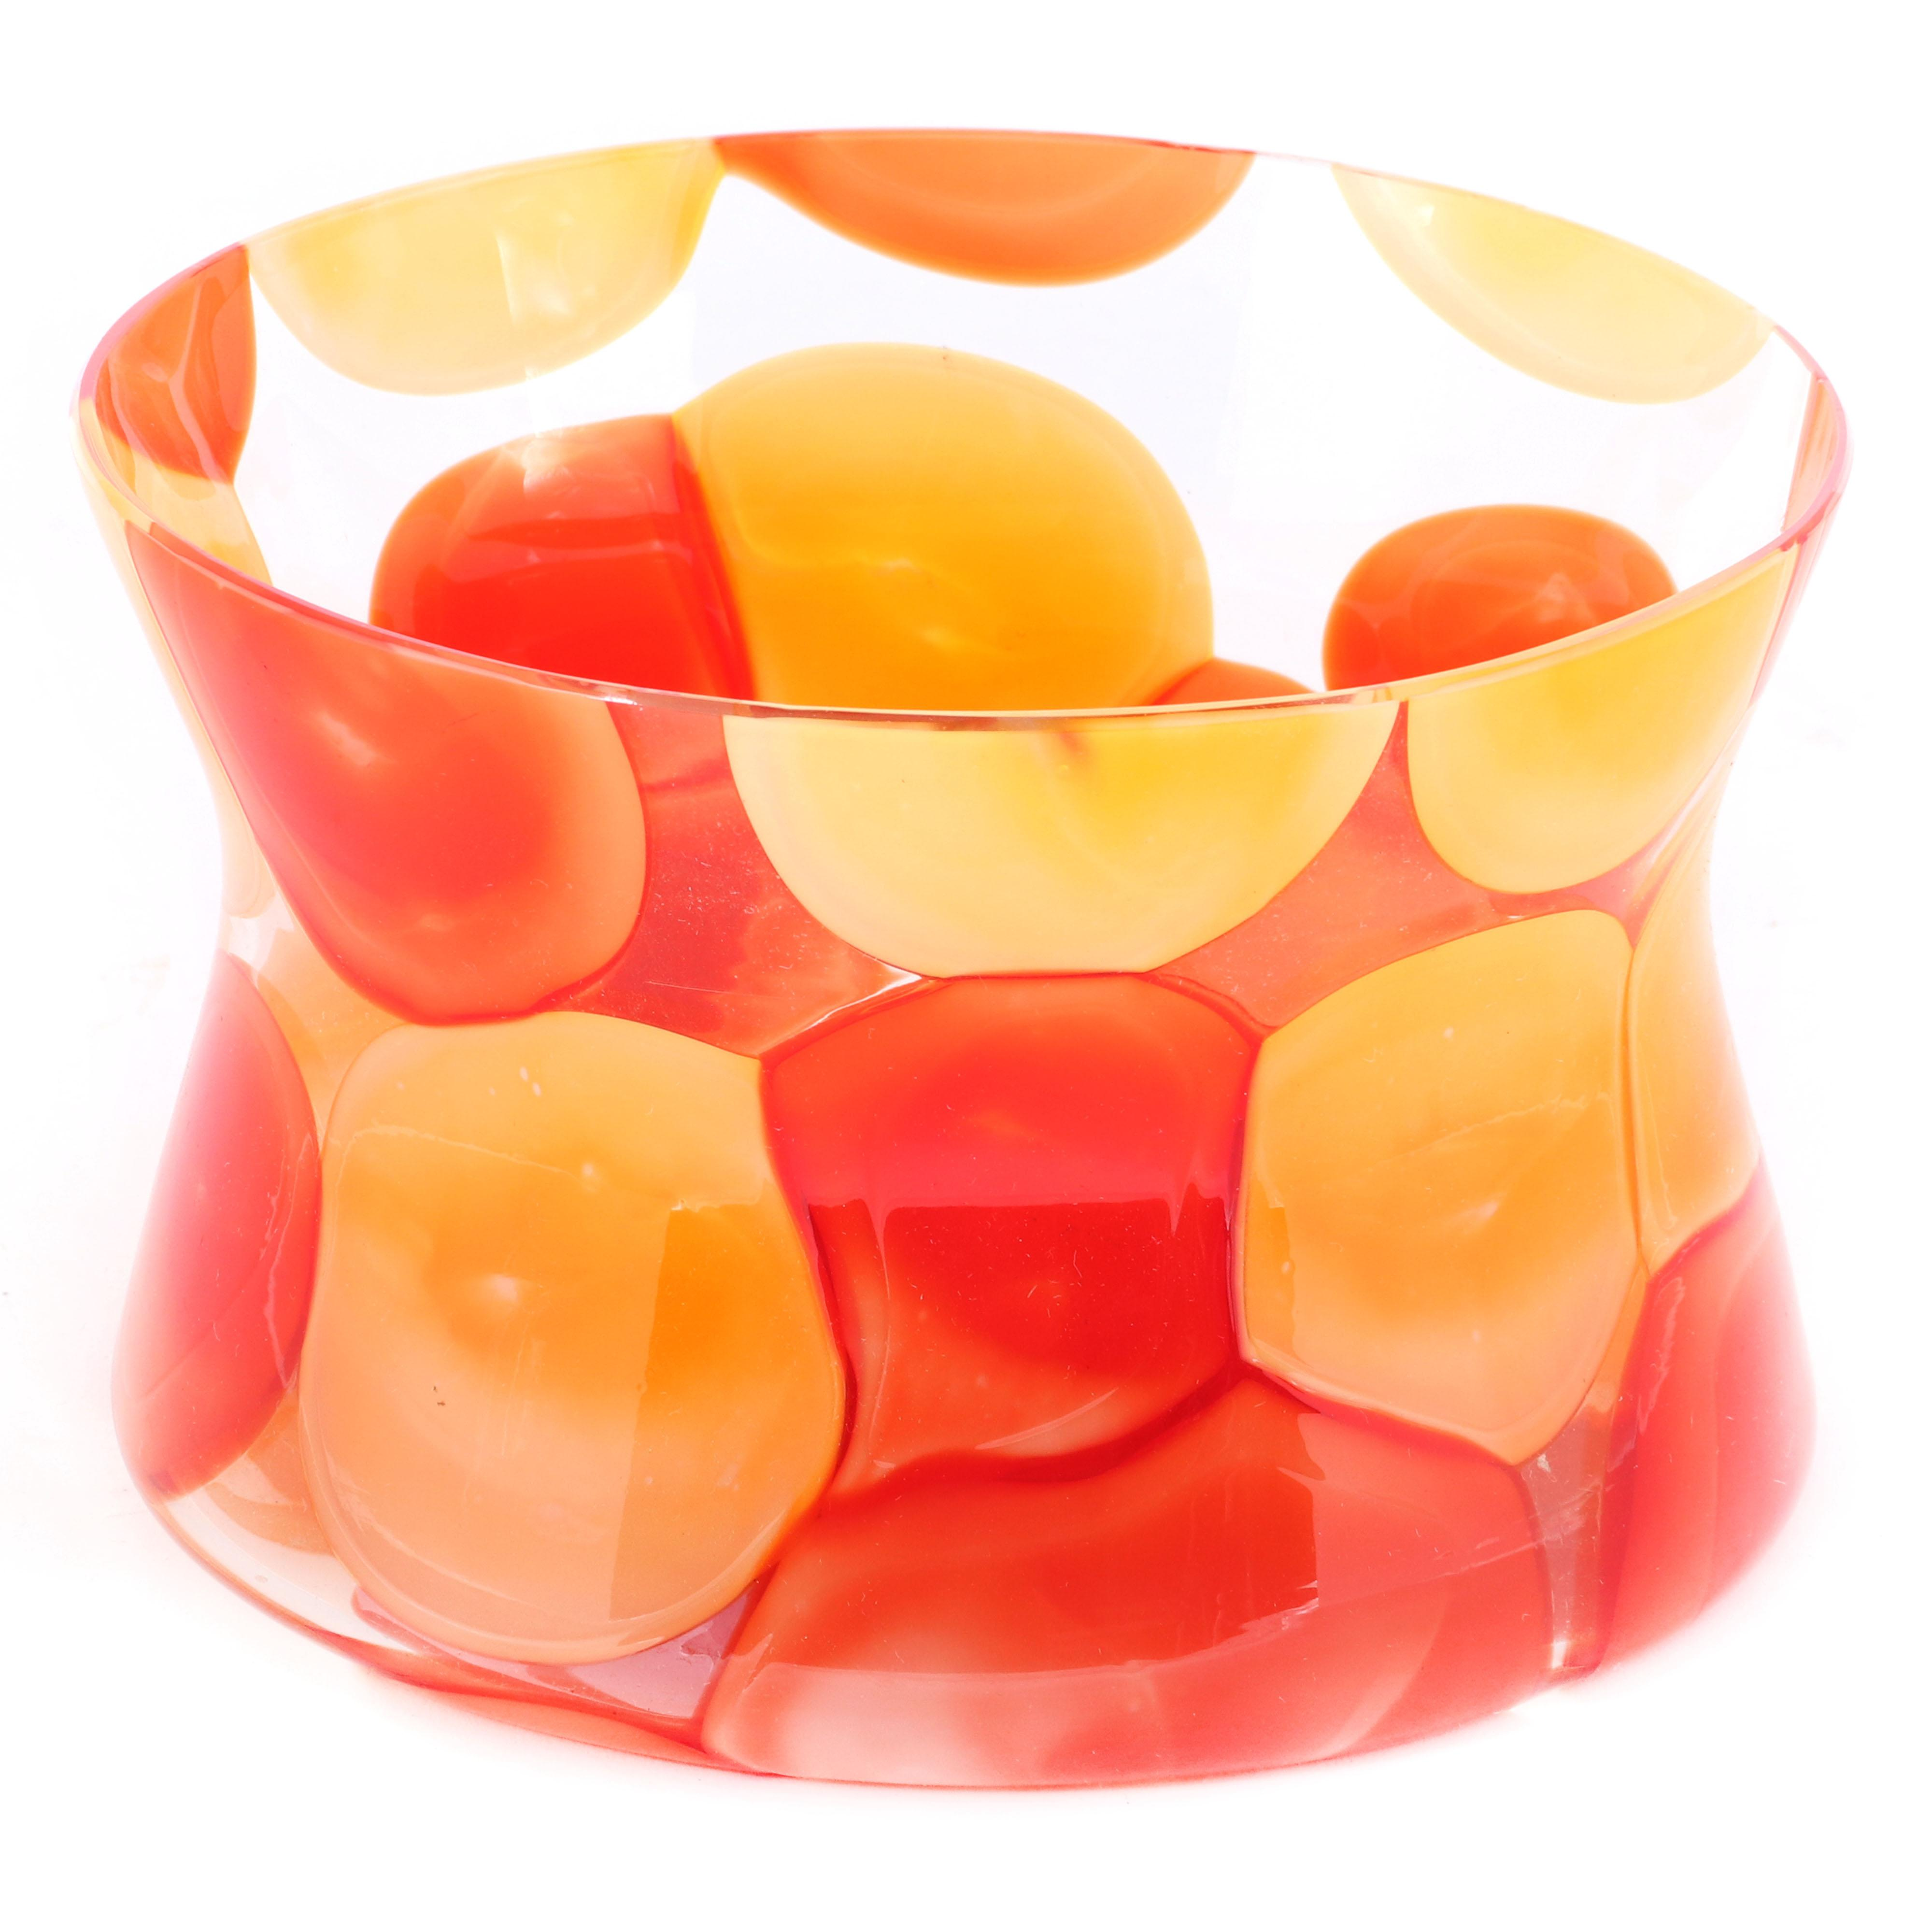 """Fratelli Toso Murano art glass Nerox corset form bowl with red-orange and yellow on clear ground. 4 1/2""""H x 6"""" diam"""